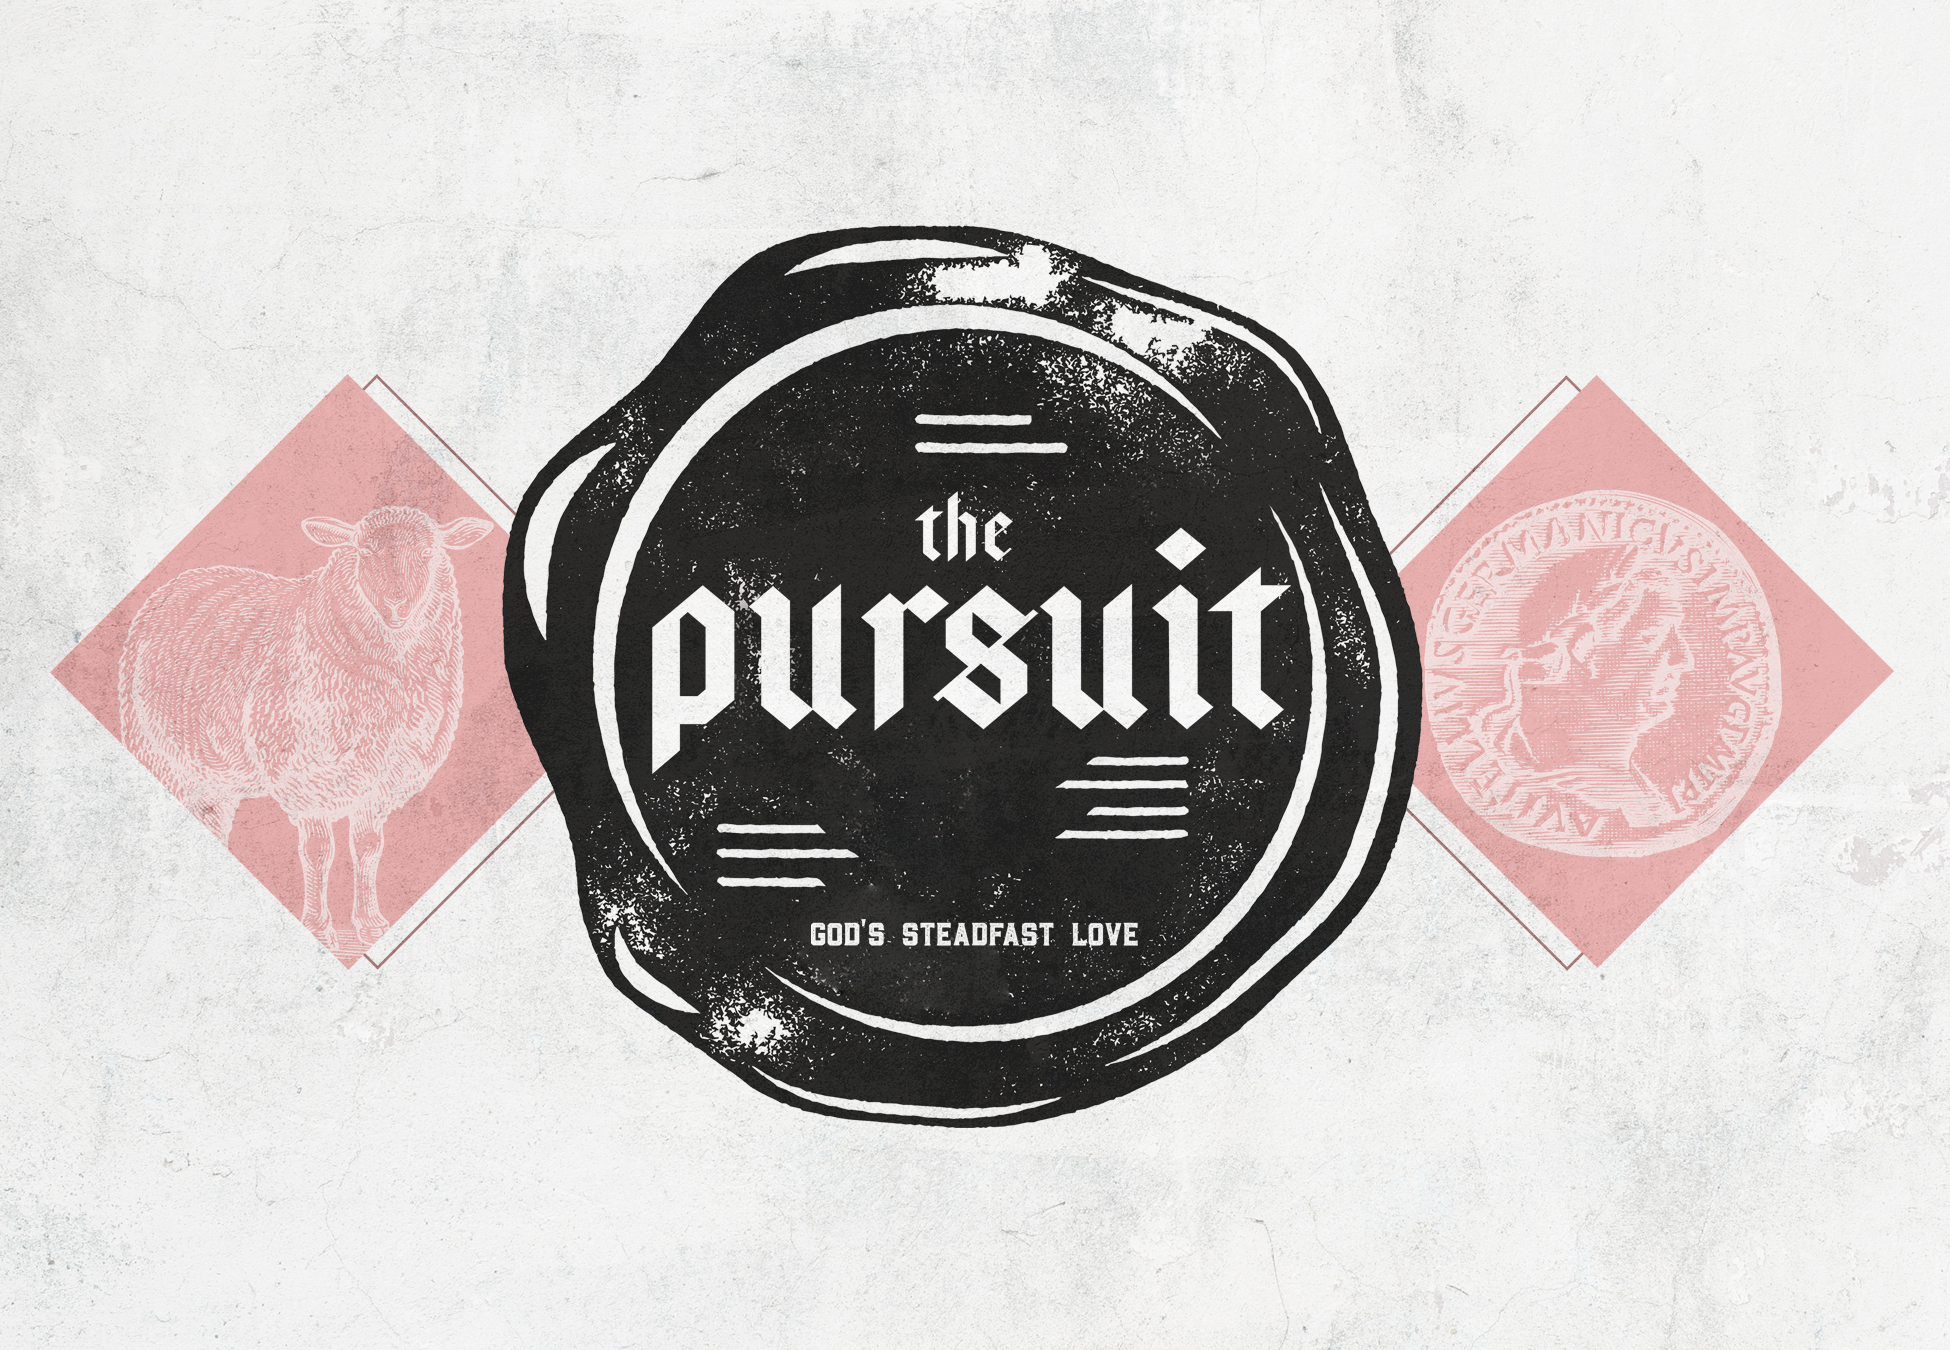 The-Pursuit_Postcard.jpg